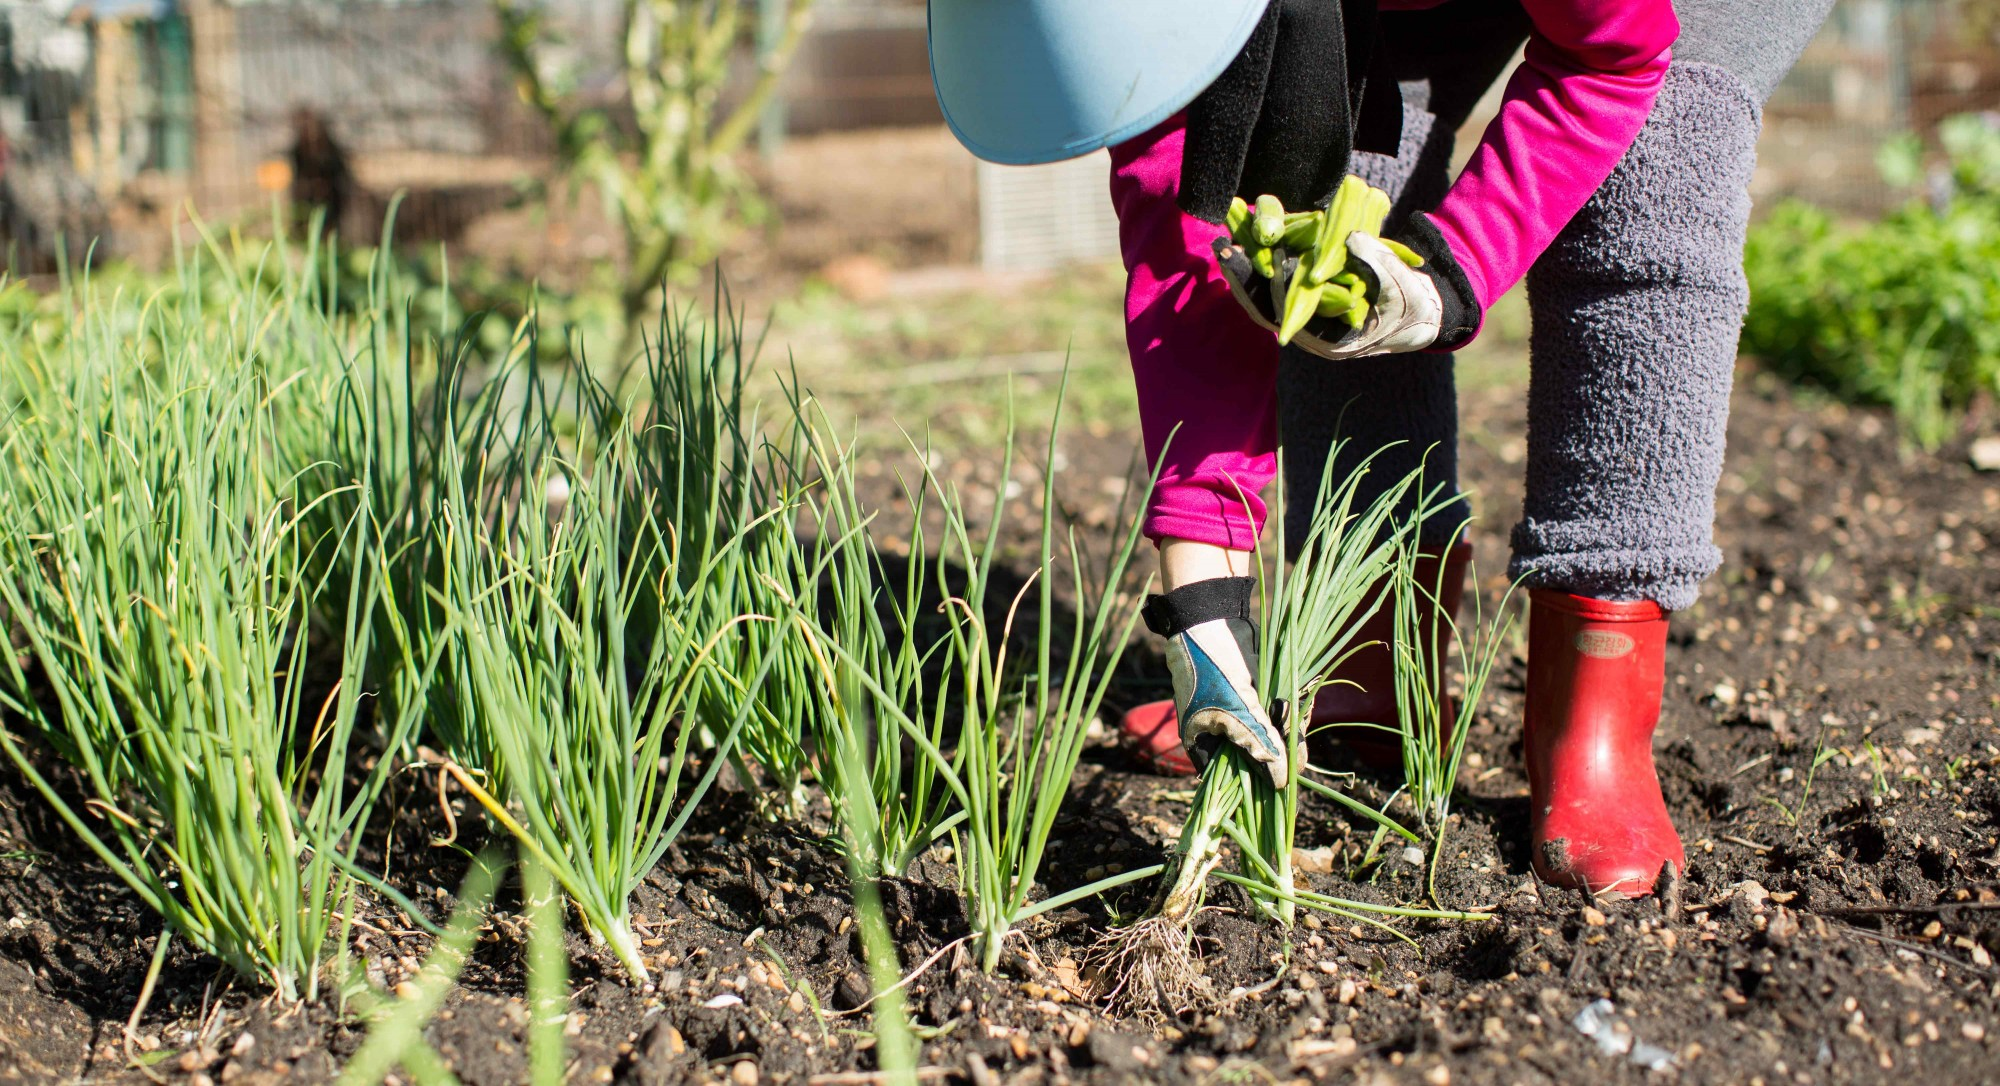 6 Ways to Fight Garden Pests Without Chemicals